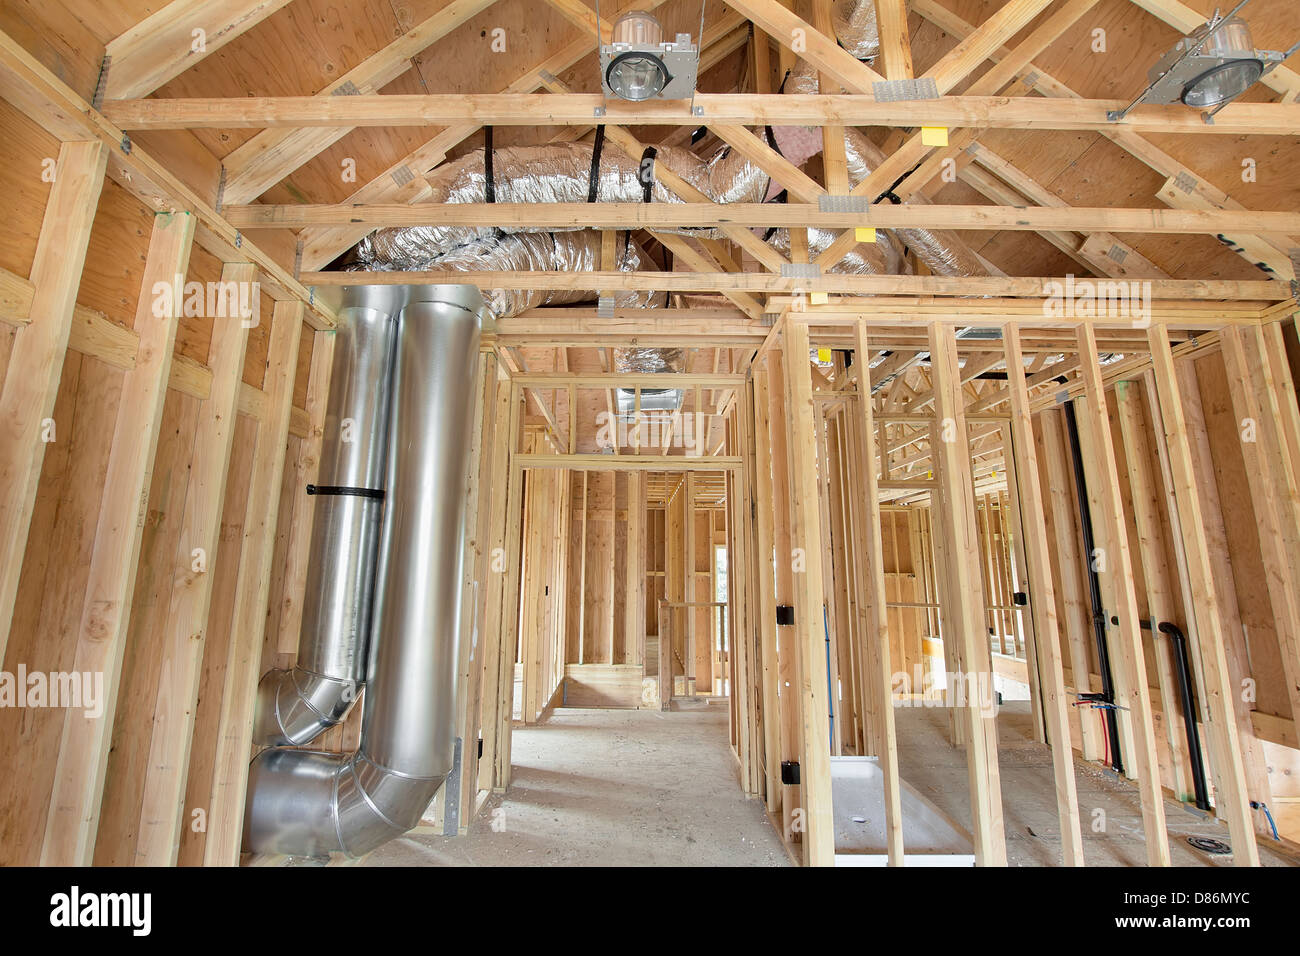 New Home Construction with Wood Studs Framing Heating Cooling System Air Duct Works Plumbing and Electrical Ceiling - Stock Image